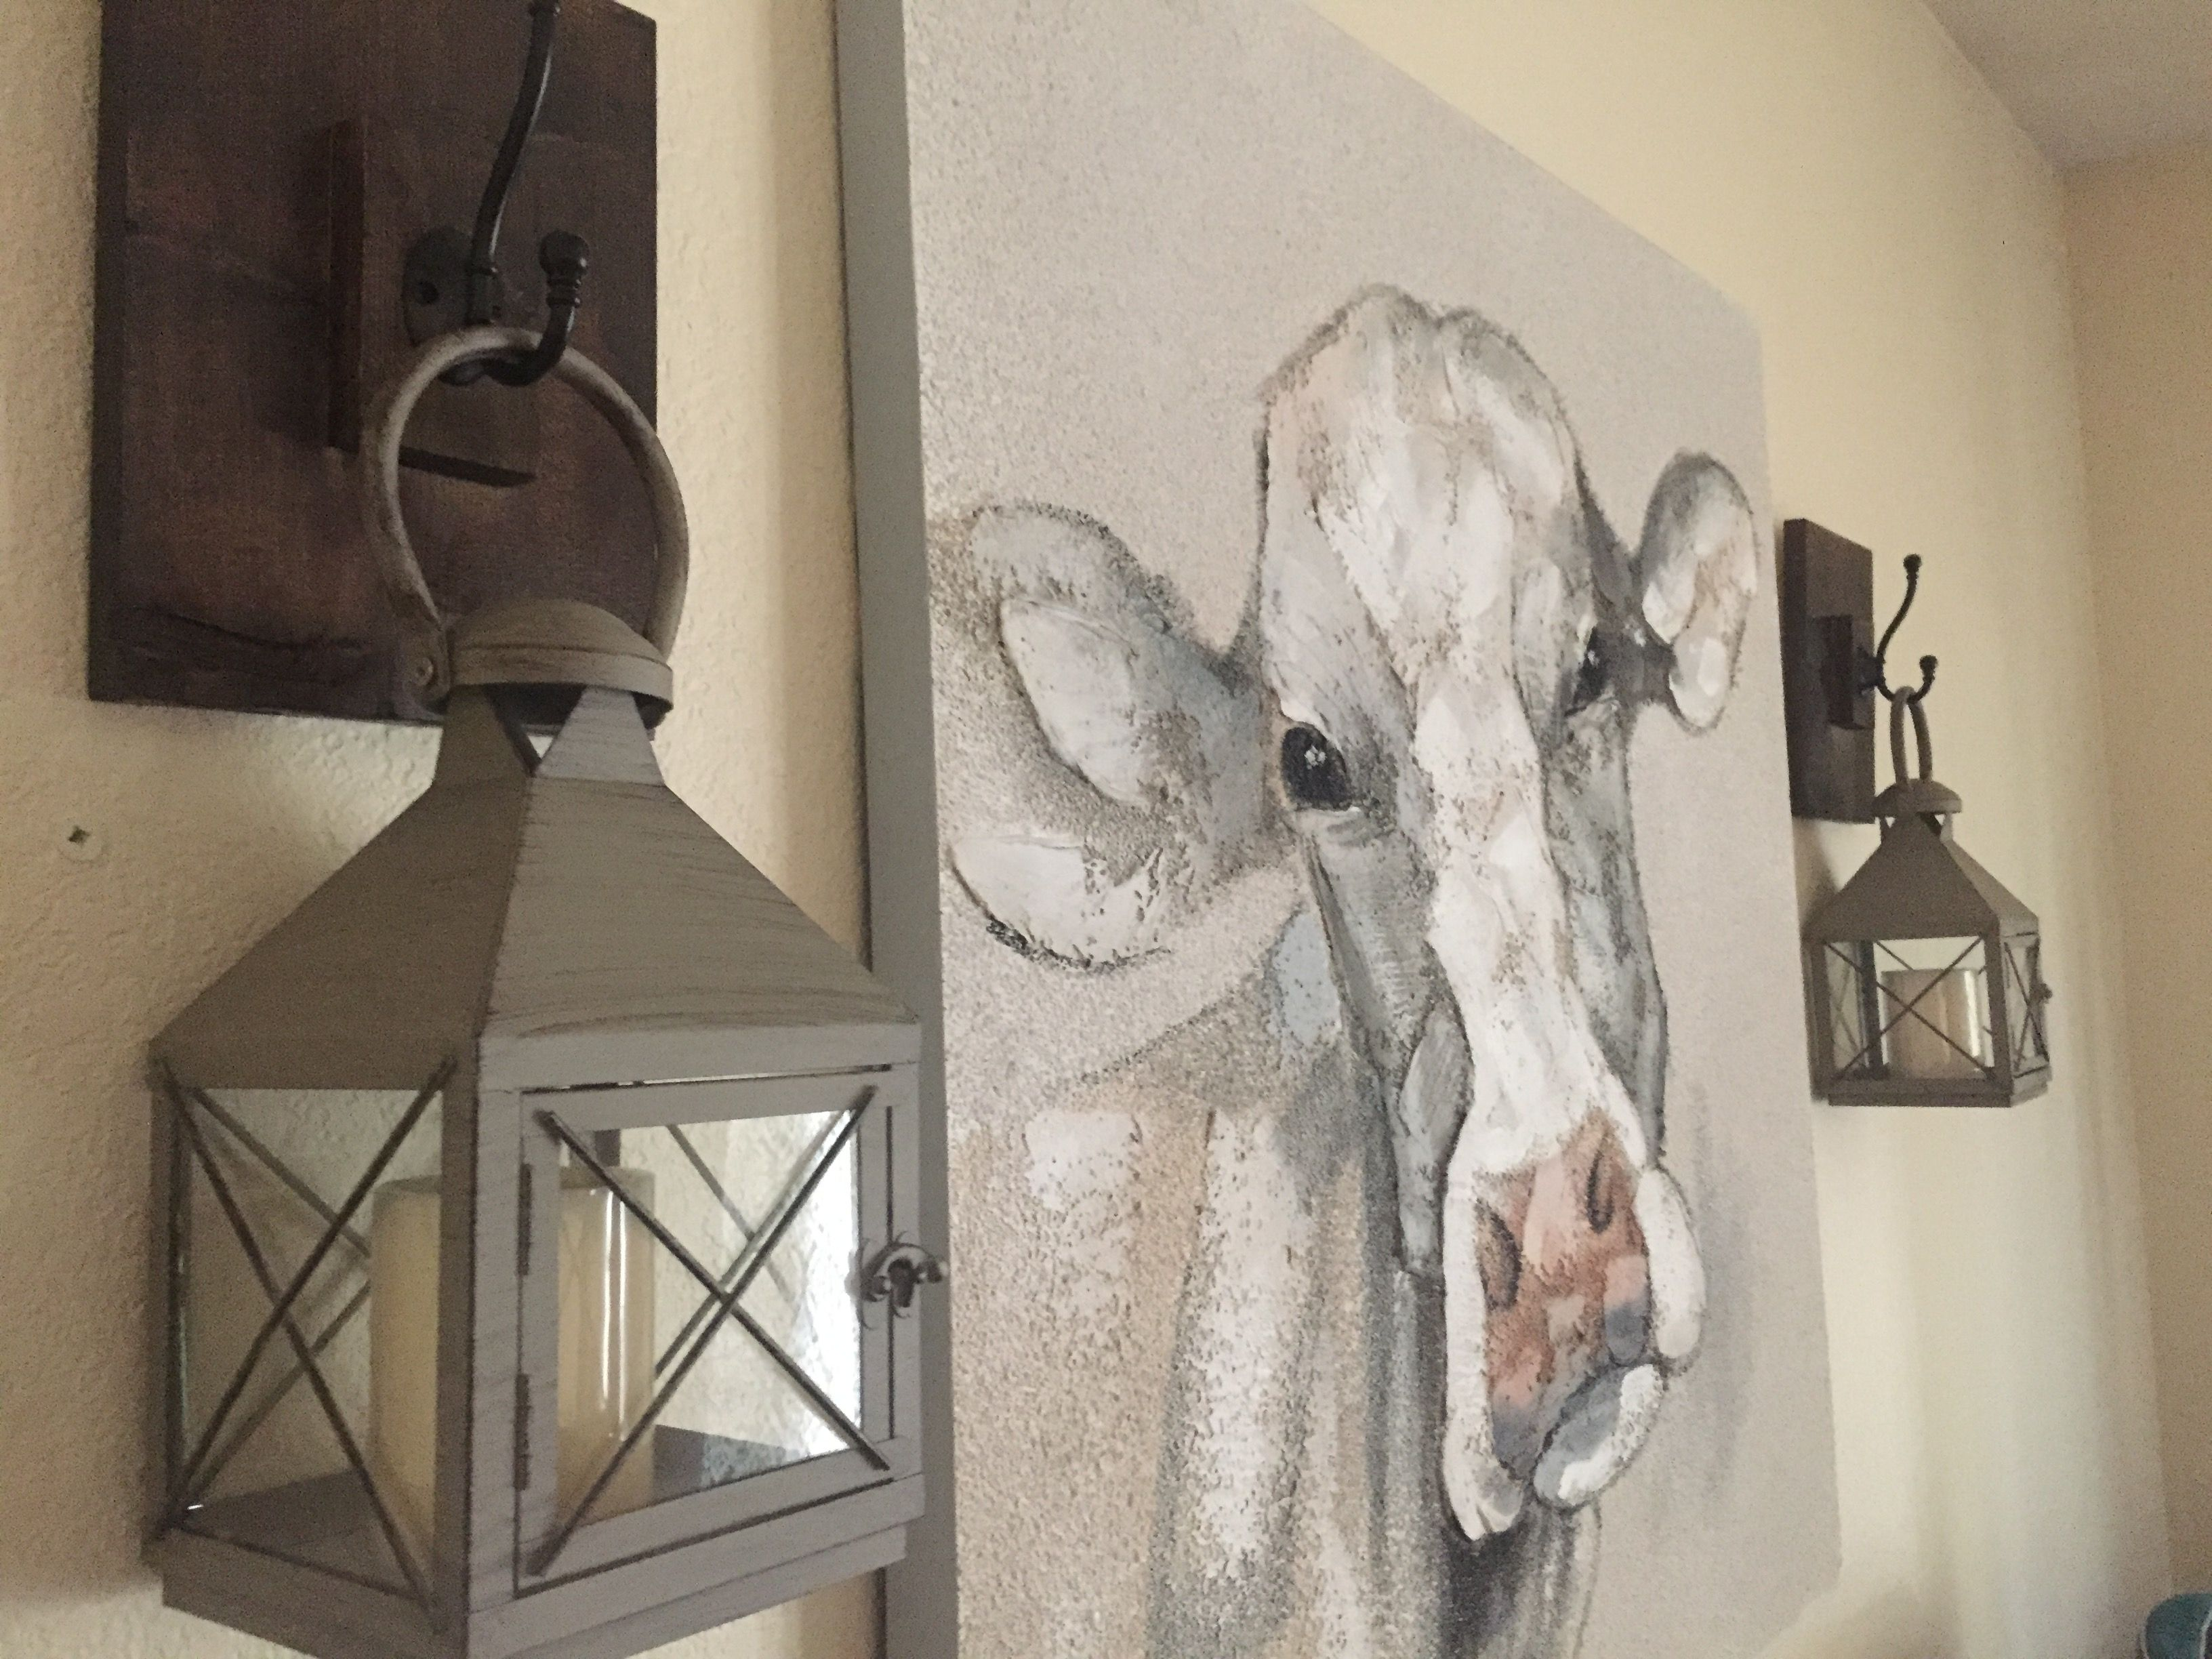 Farmhouse Decor With Cow Picture Handmade Lantern Holders And Lanterns Vintage Room Cute Home